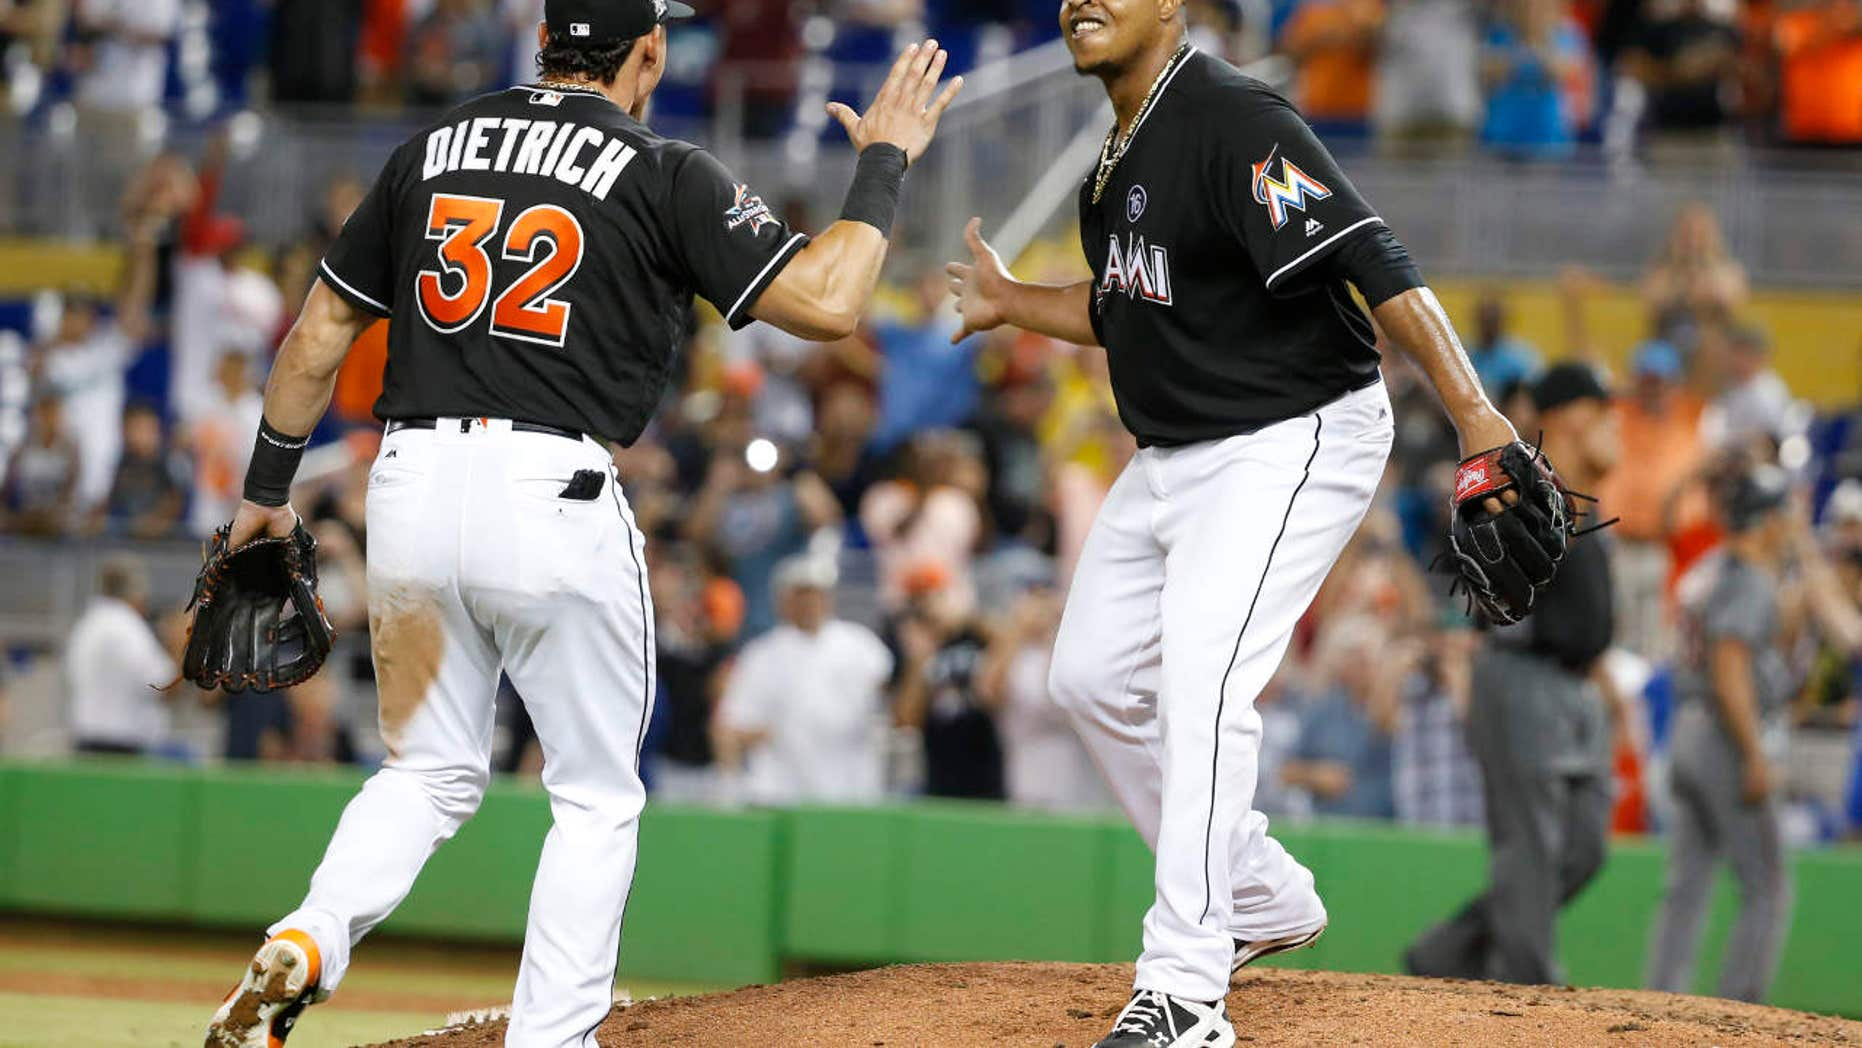 Miami Marlins starting pitcher Edinson Volquez, right, celebrates with Derek Dietrich (32) after throwing a no-hitter as the Marlins defeated the Arizona Diamondbacks 3-0 during a baseball game, Saturday, June 3, 2017, in Miami.